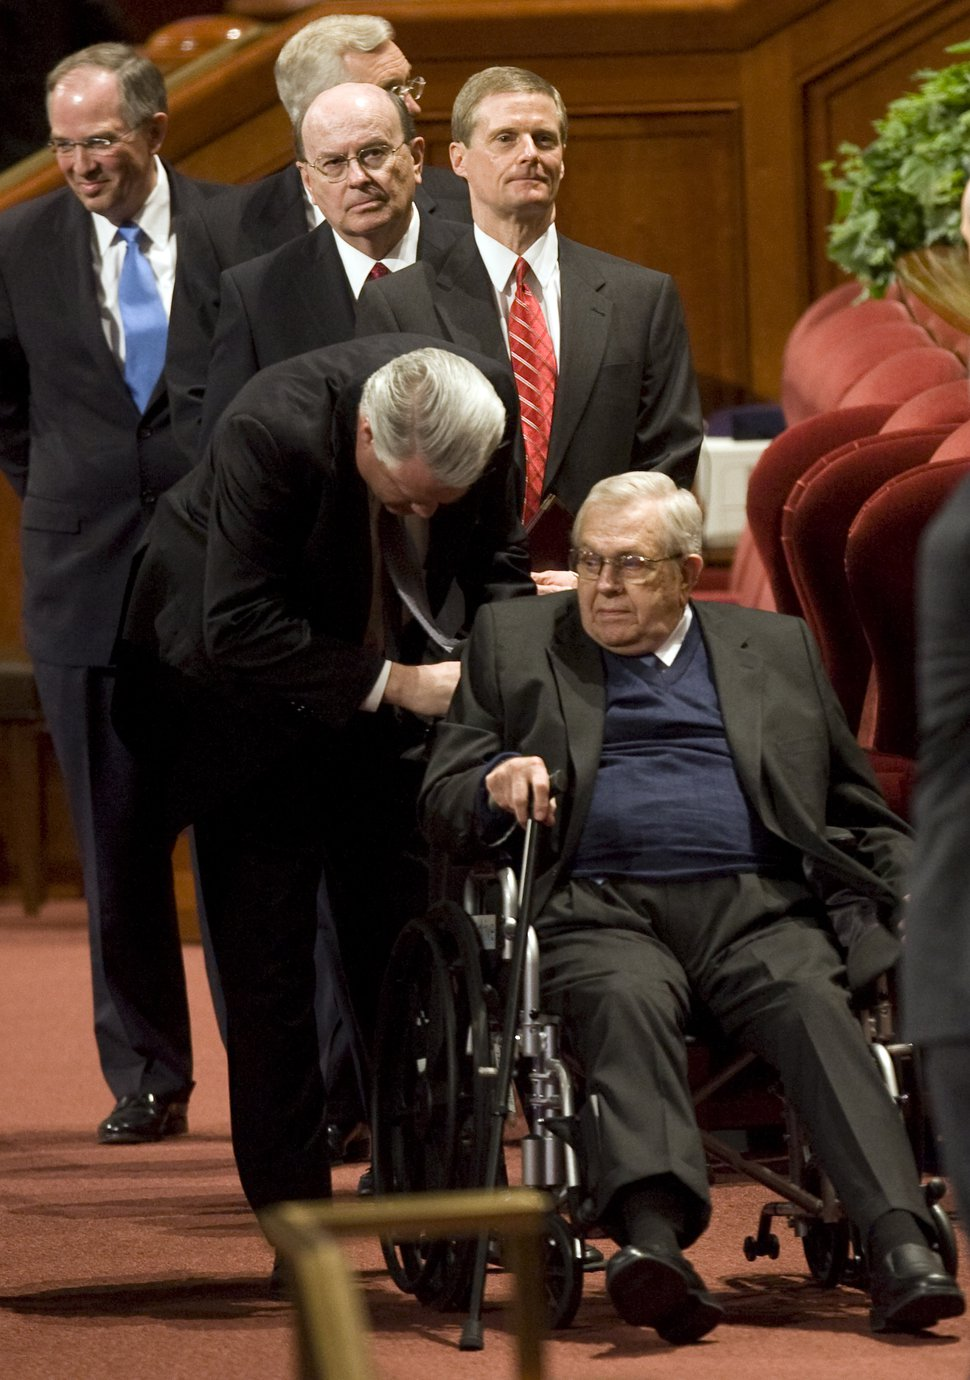 Kim Raff | The Salt Lake Tribune Boyd K. Packer, of the Quorum of the Twelve Apostles, is helped out of the conference center after the early session of the 182nd Annual General Conference of The Church of Jesus Christ of Latter-day Saints on April 1, 2012.